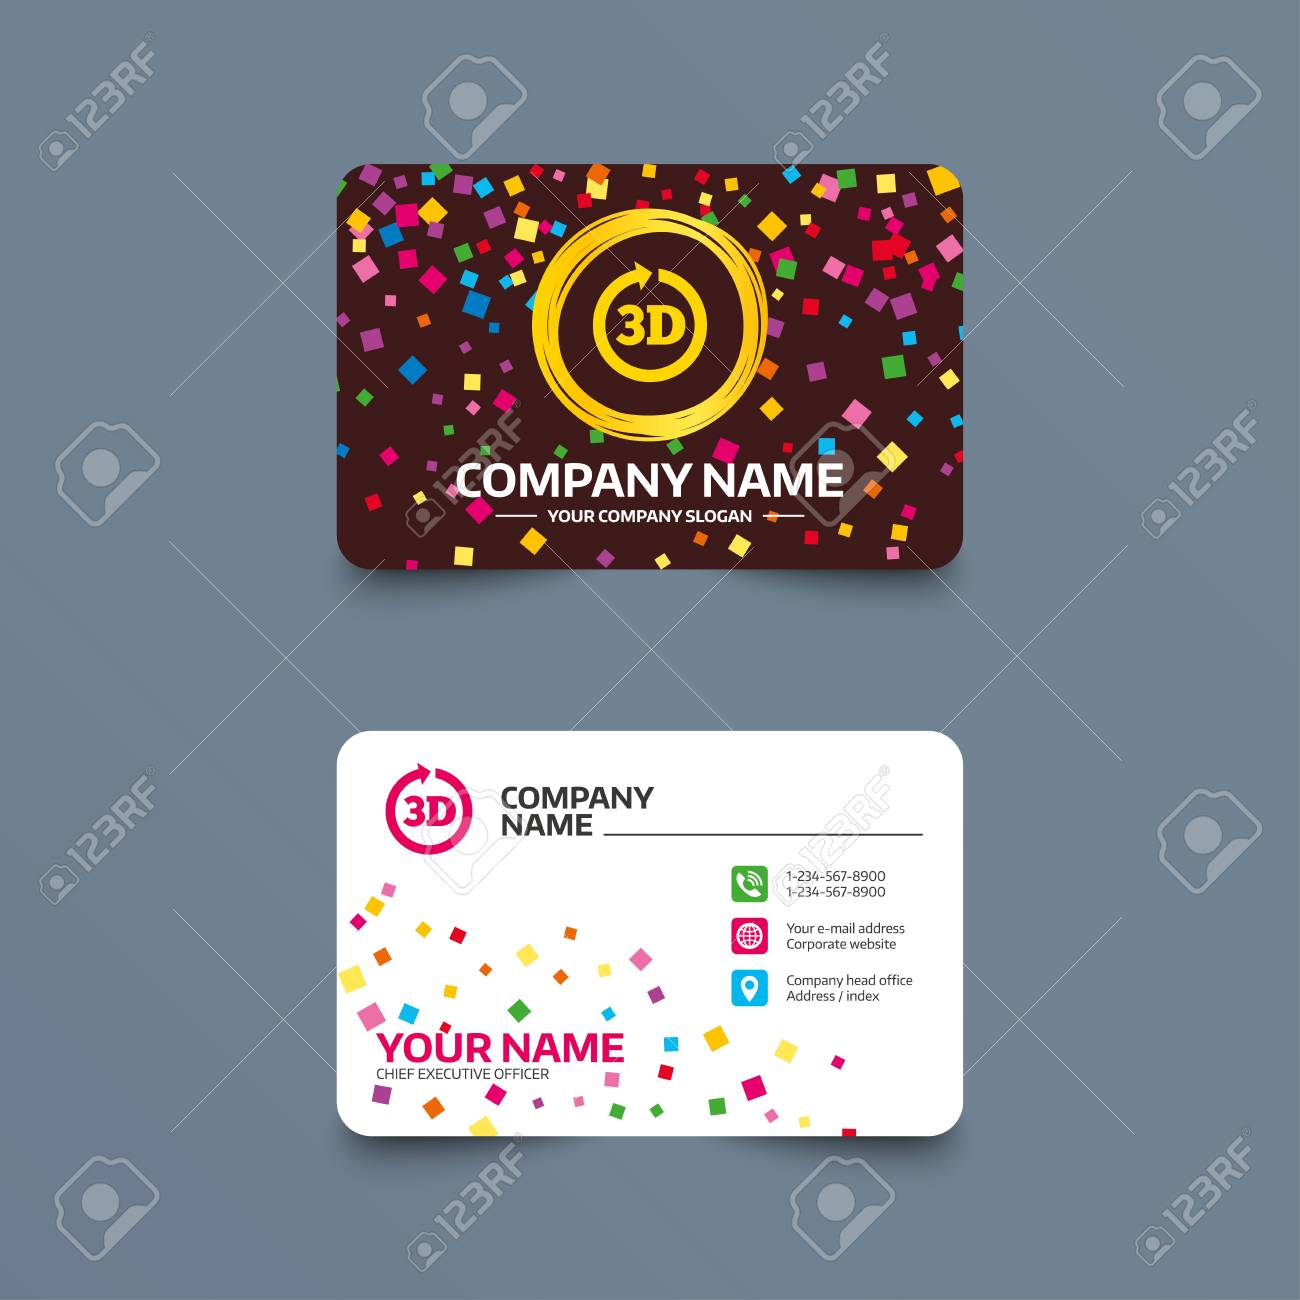 Business card template with confetti pieces 3d sign icon 3d business card template with confetti pieces 3d sign icon 3d new technology symbol accmission Image collections